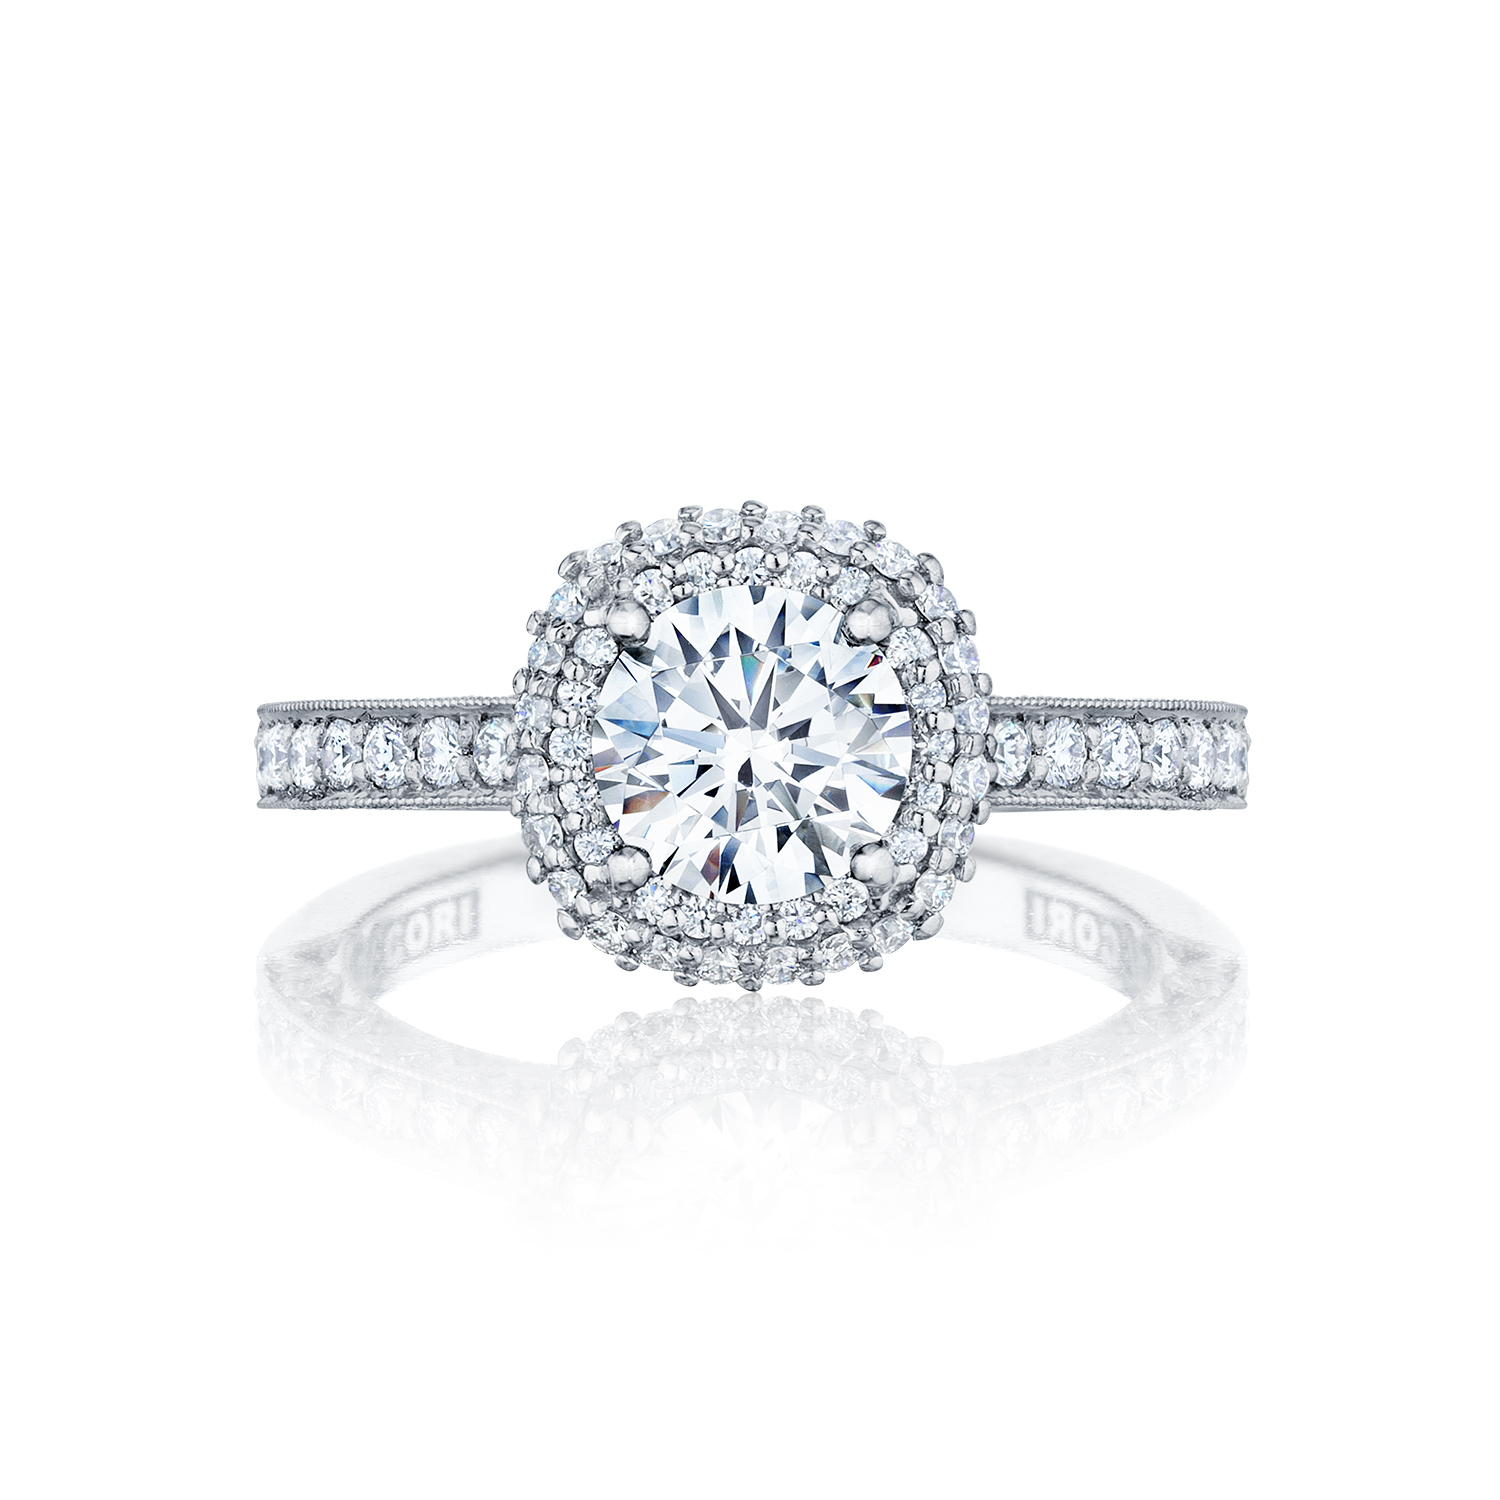 Wedding Rings Tacori Tacori Engagement Rings Blooming Beauties Halo Setting 061ctw